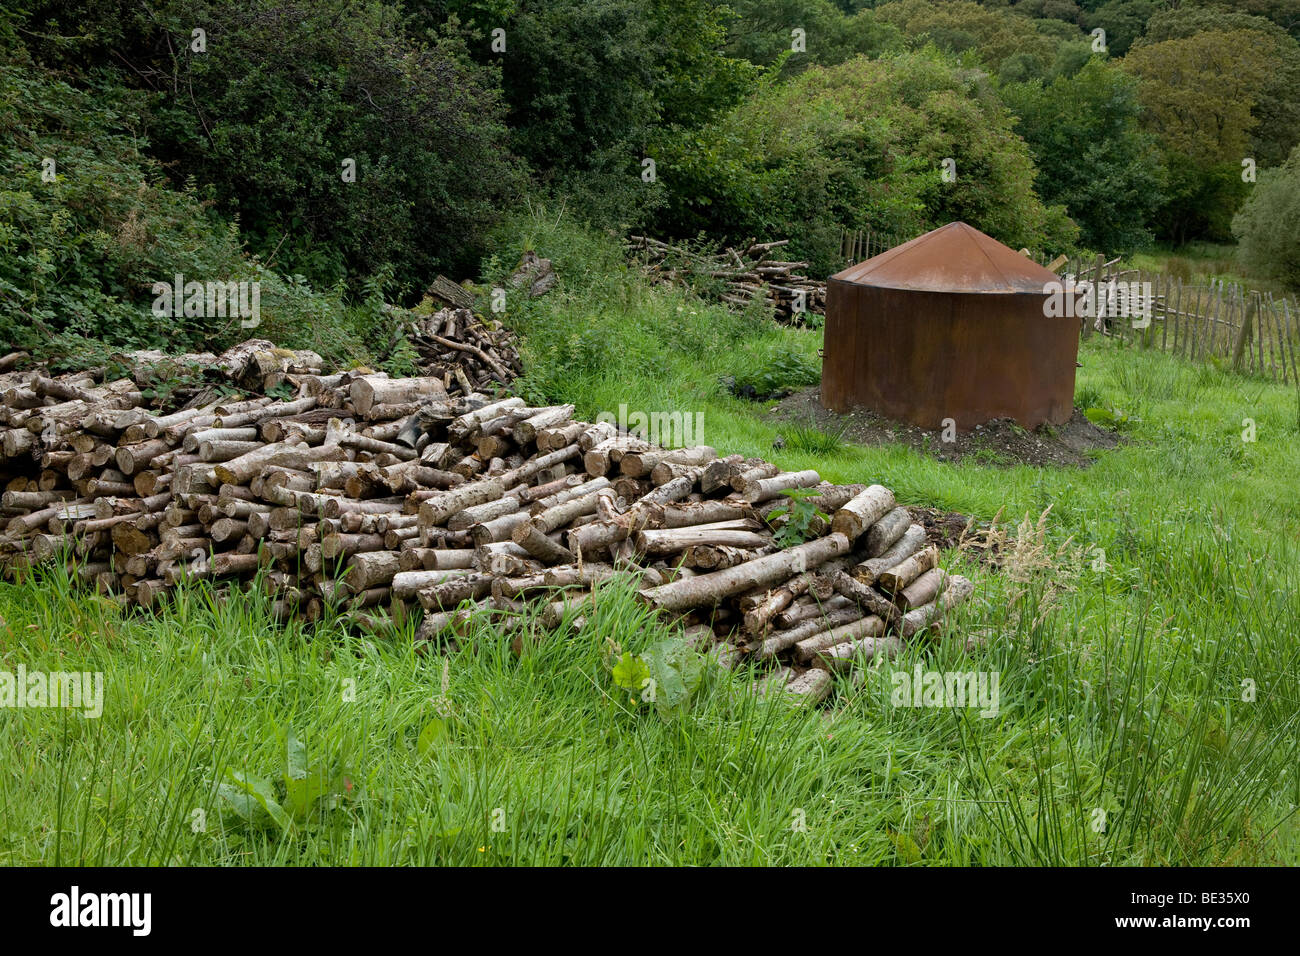 A Charcoal burning kiln in alder woodland near Aber Falls,  in Snowdonia National Park, Wales - Stock Image